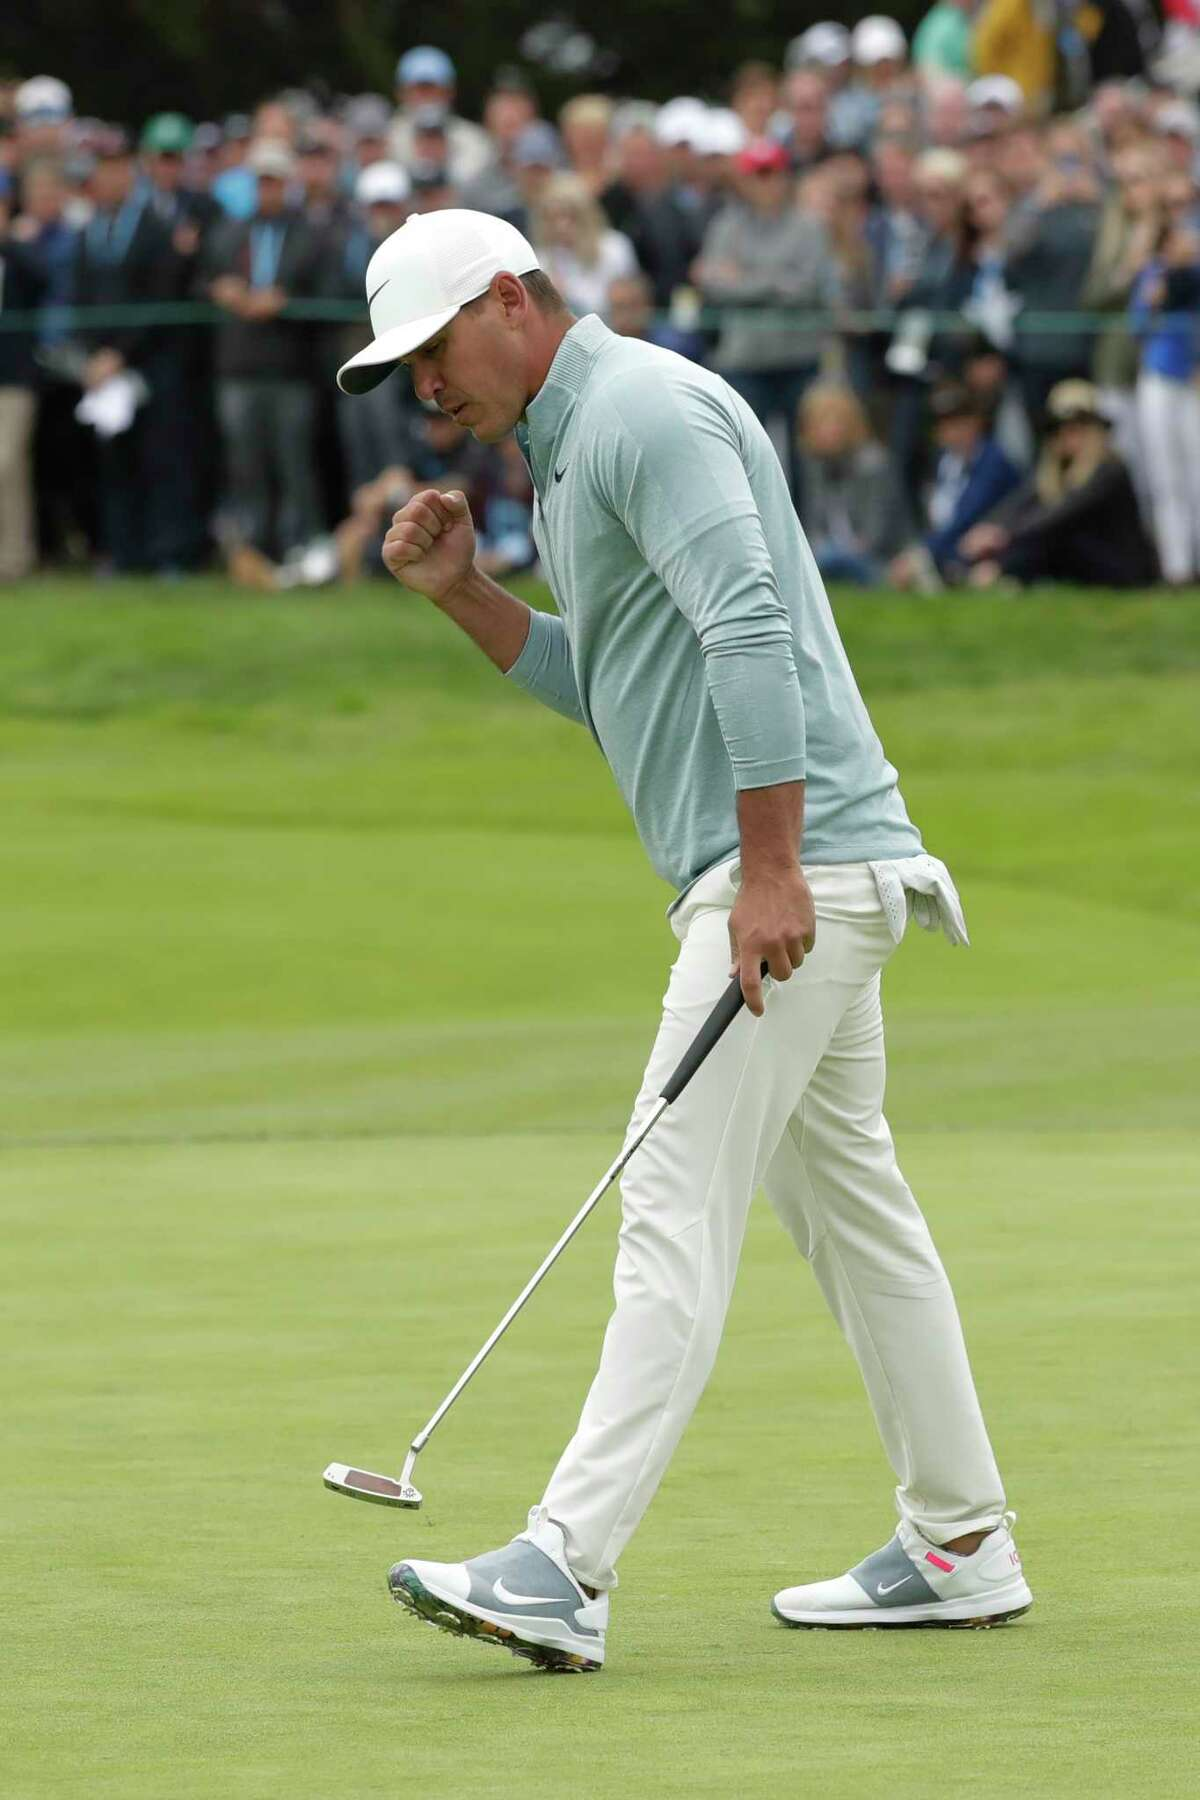 Brooks Koepka reacts after making a putt on the 11th hole during the final round of the U.S. Open Championship golf tournament Sunday, June 16, 2019, in Pebble Beach, Calif.